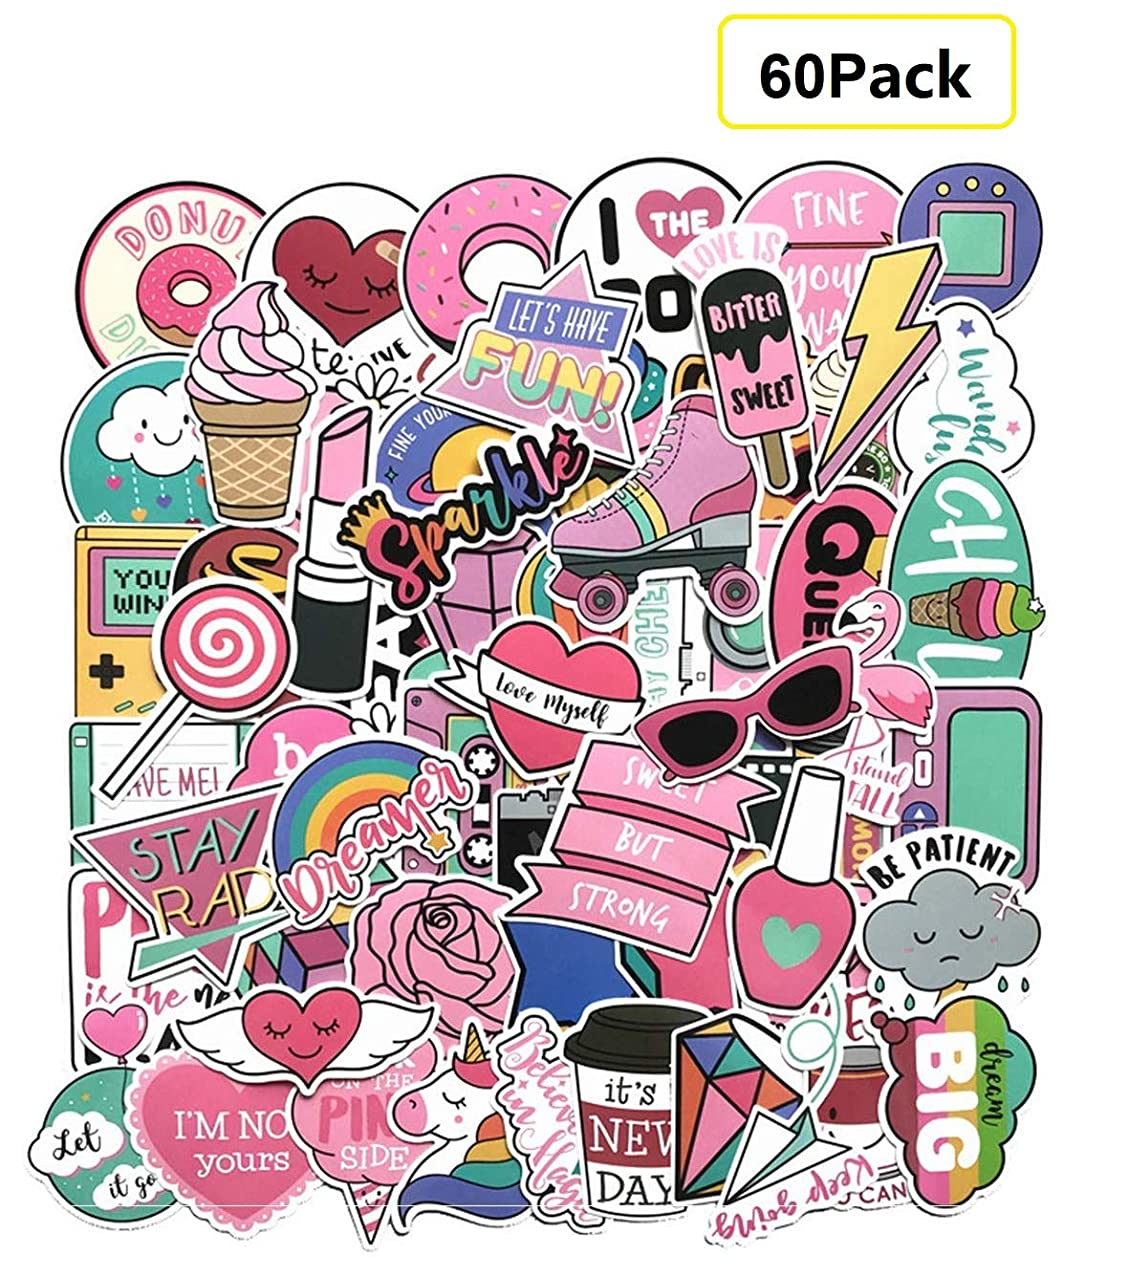 60 Pieces Girl Cute Lovely Stickers for Personalize Laptop, Car, Helmet, Skateboard, Luggage Graffiti Decals (B)